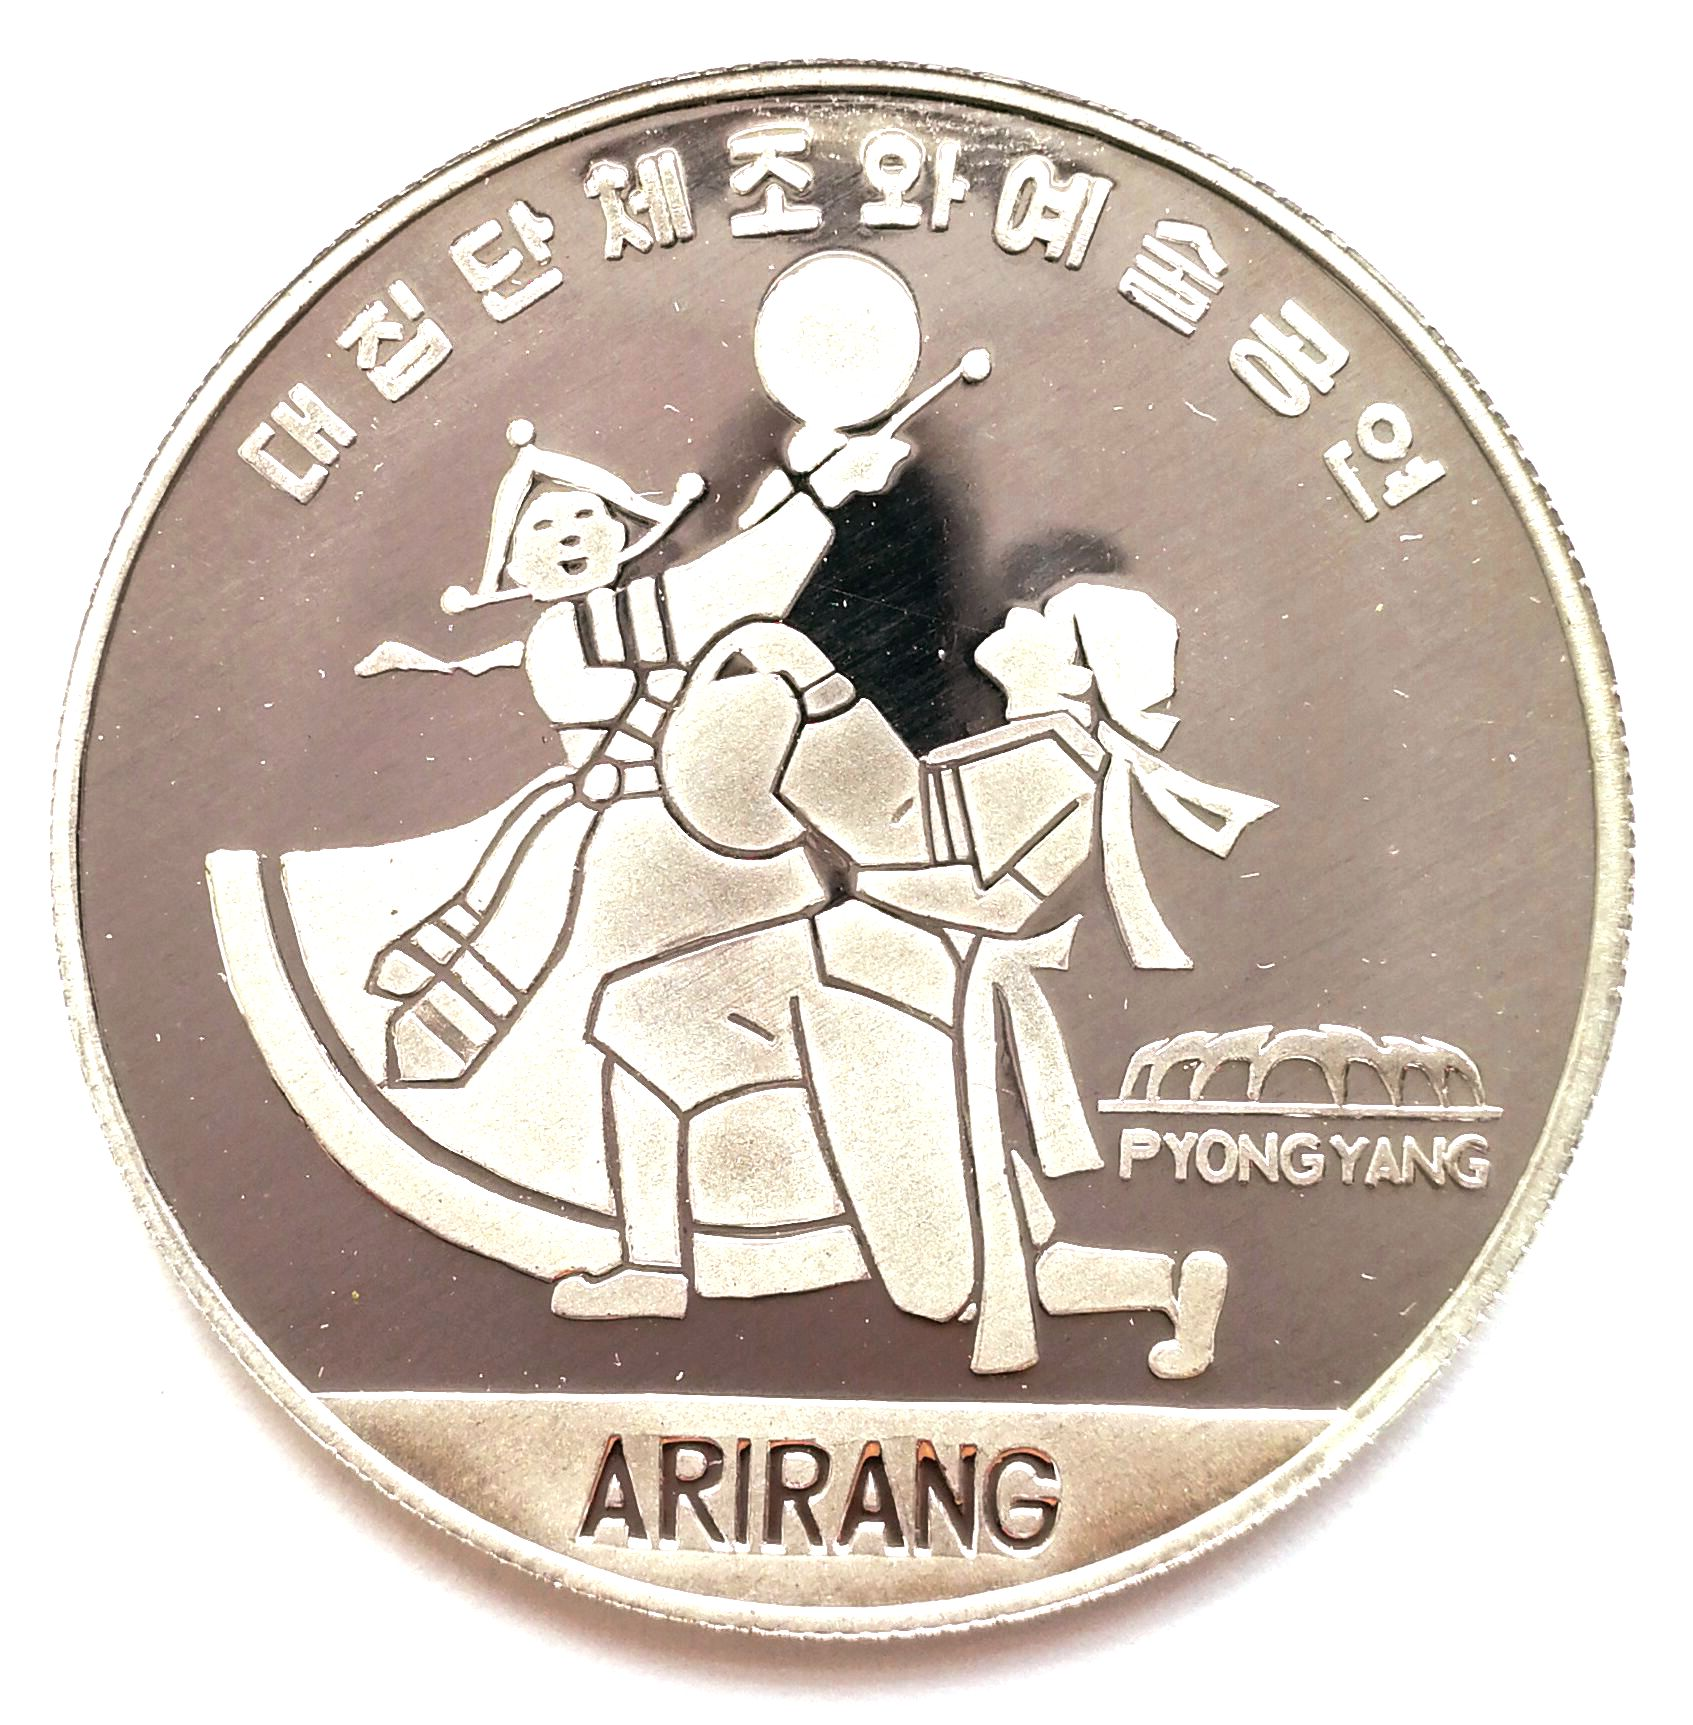 "L3100, Korea Proof Coin, ""Arirang Dance Pyongyang"", Alu 2002"